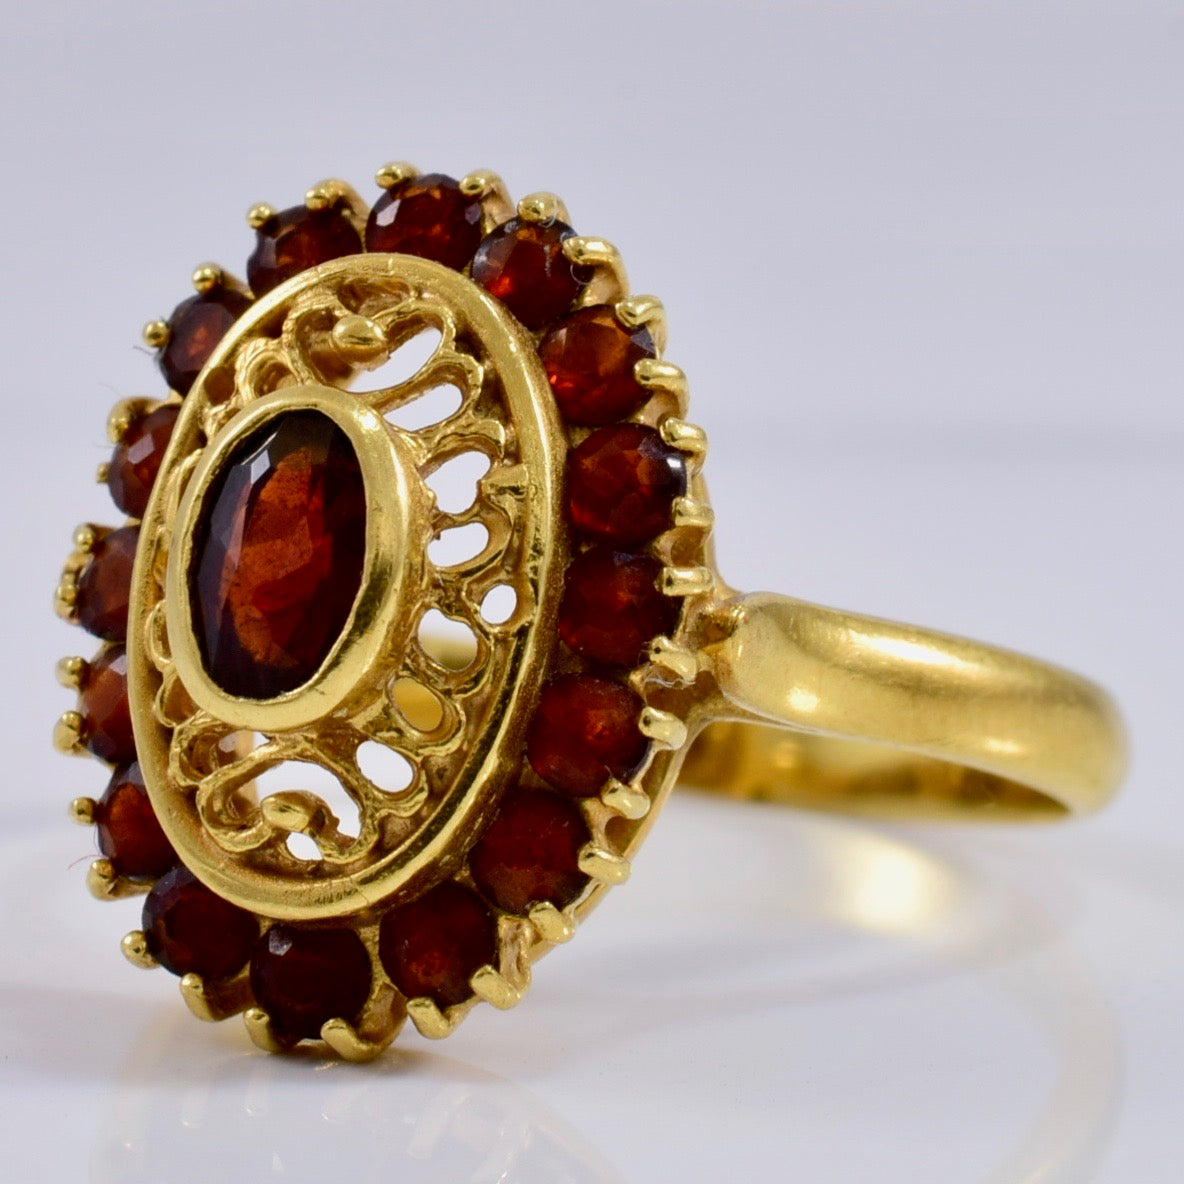 Intricate Gold and Garnet Ring | 0.75 ctw SZ 6.5 |